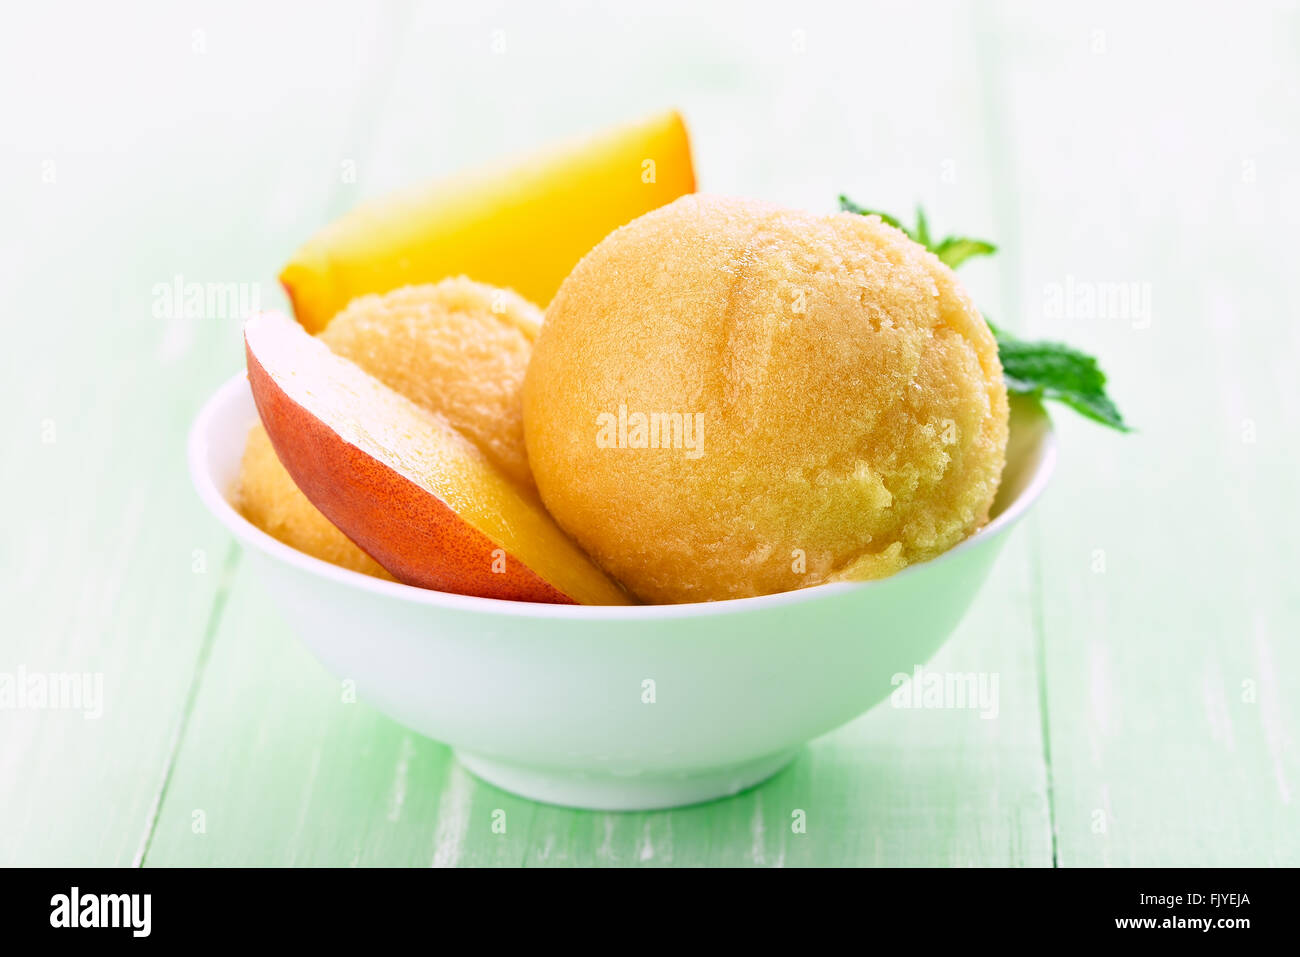 Apricot peach ice cream and slices, close up view - Stock Image